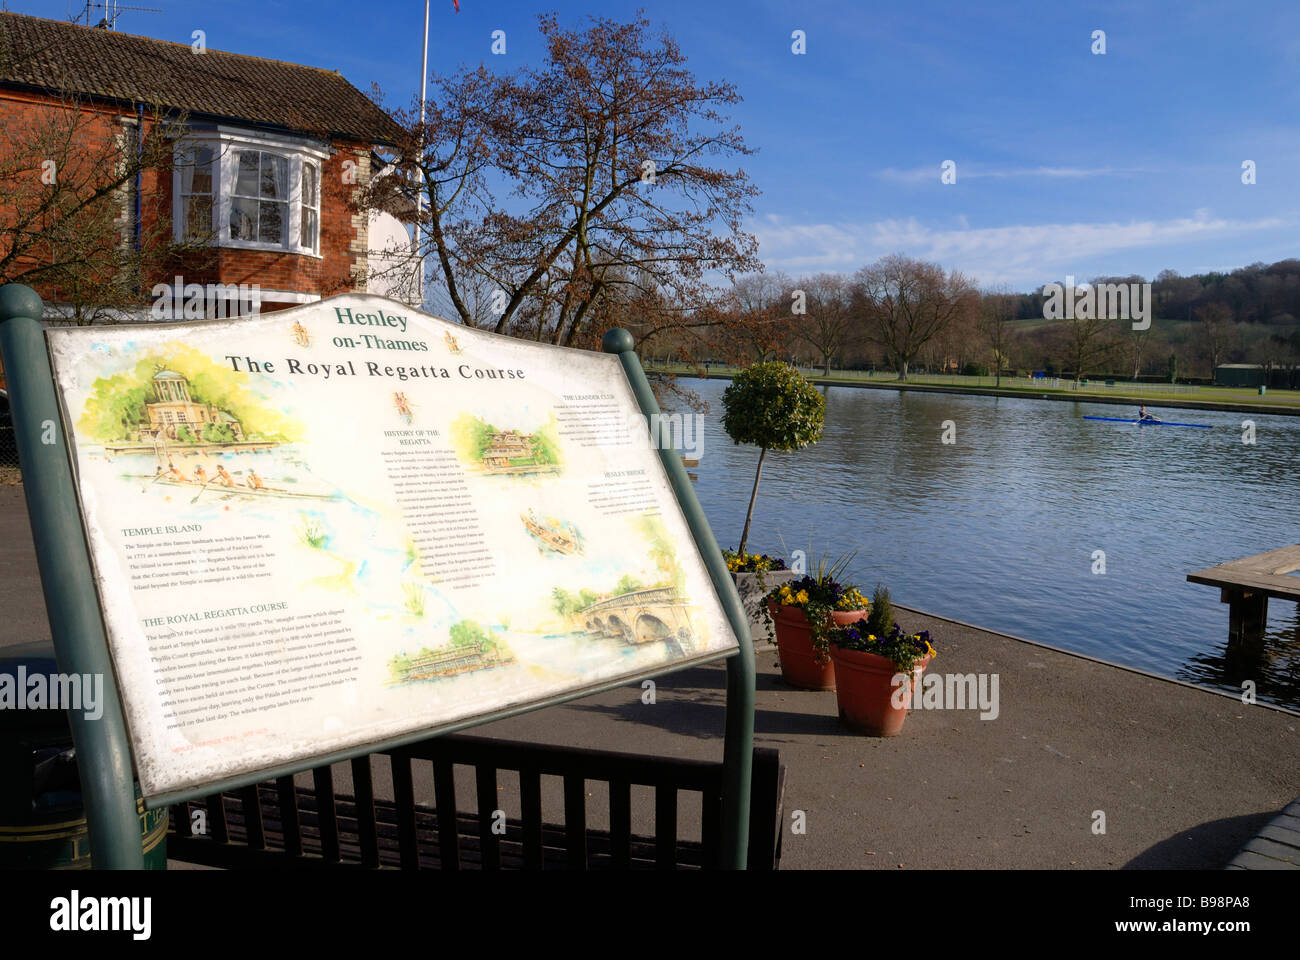 Henley on Thames Royal Regatta course sign with rower on river - Stock Image